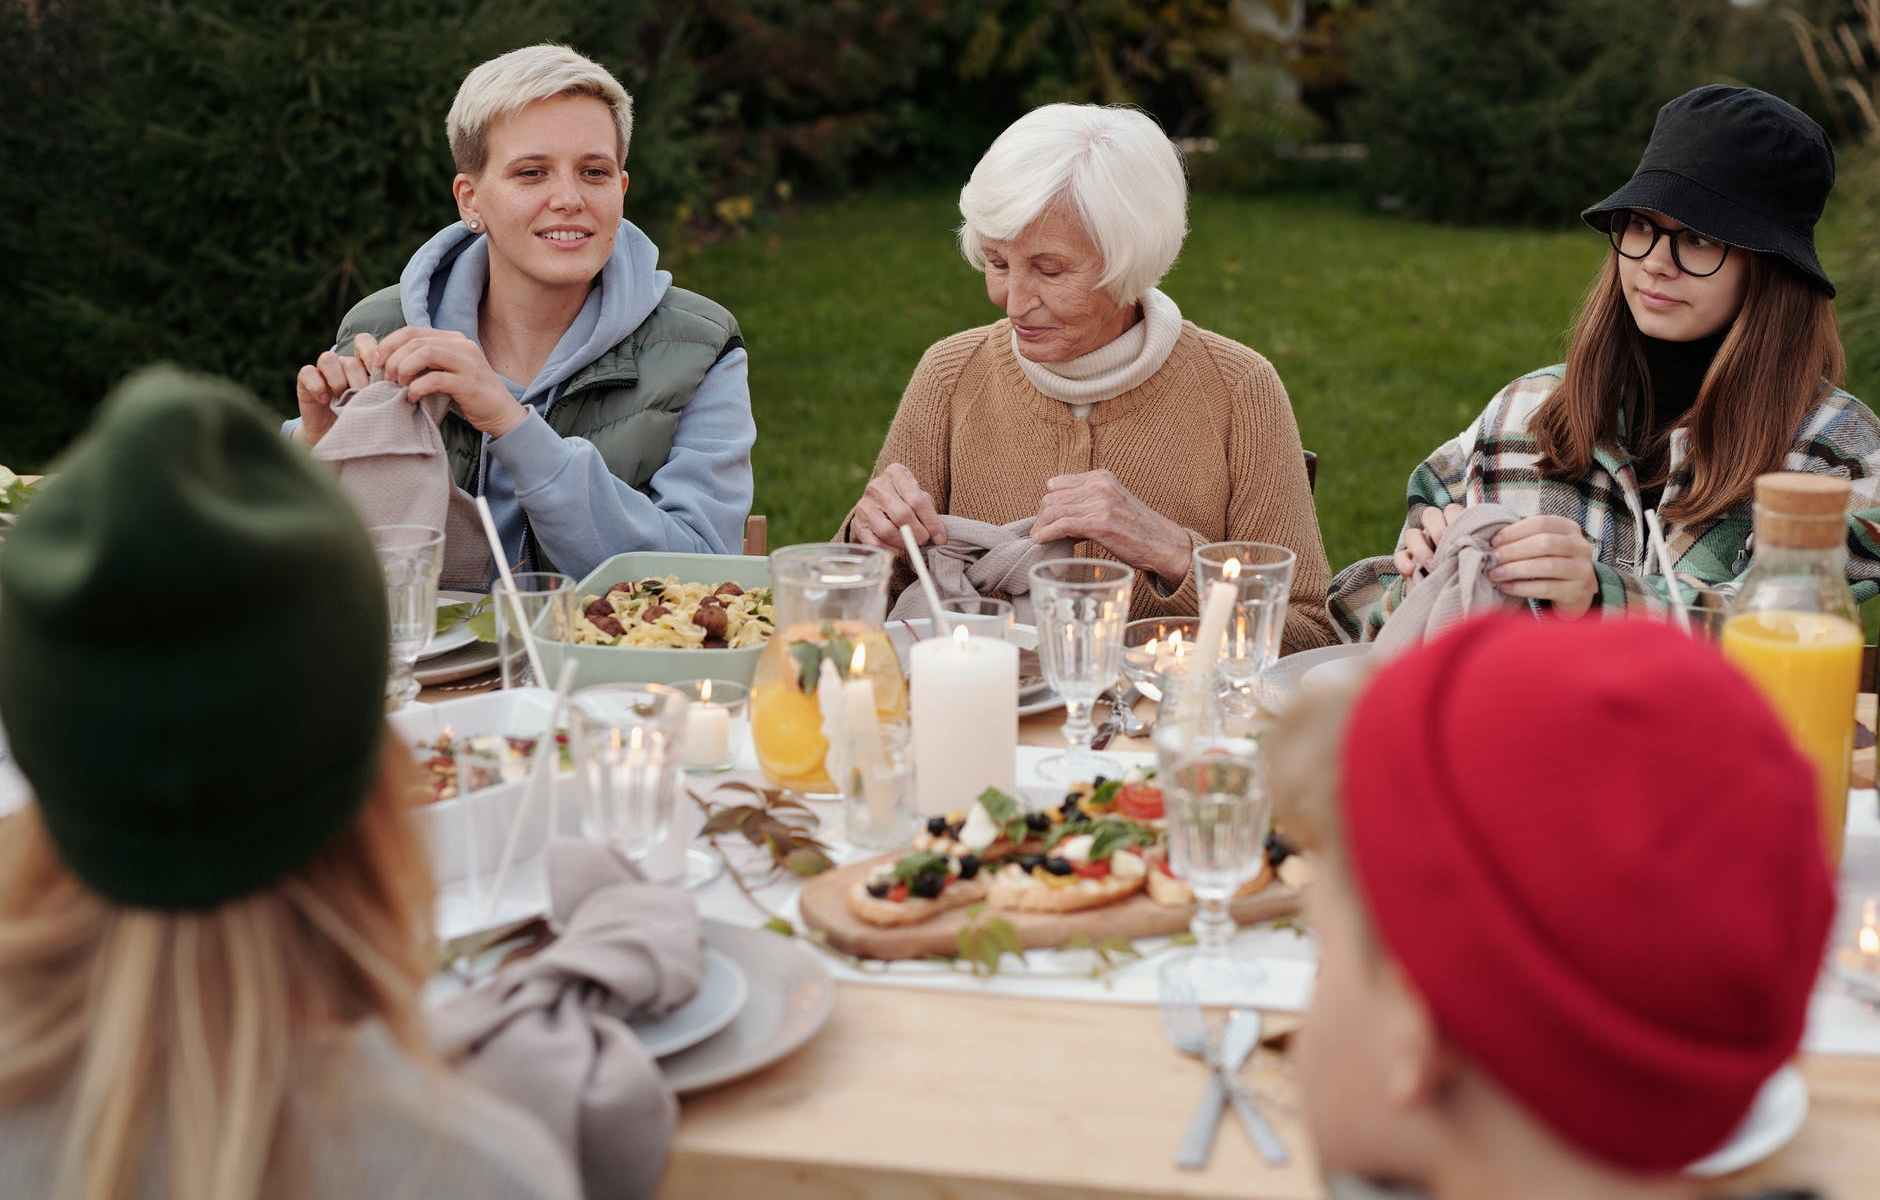 cheerful family enjoying dinner party together in countryside